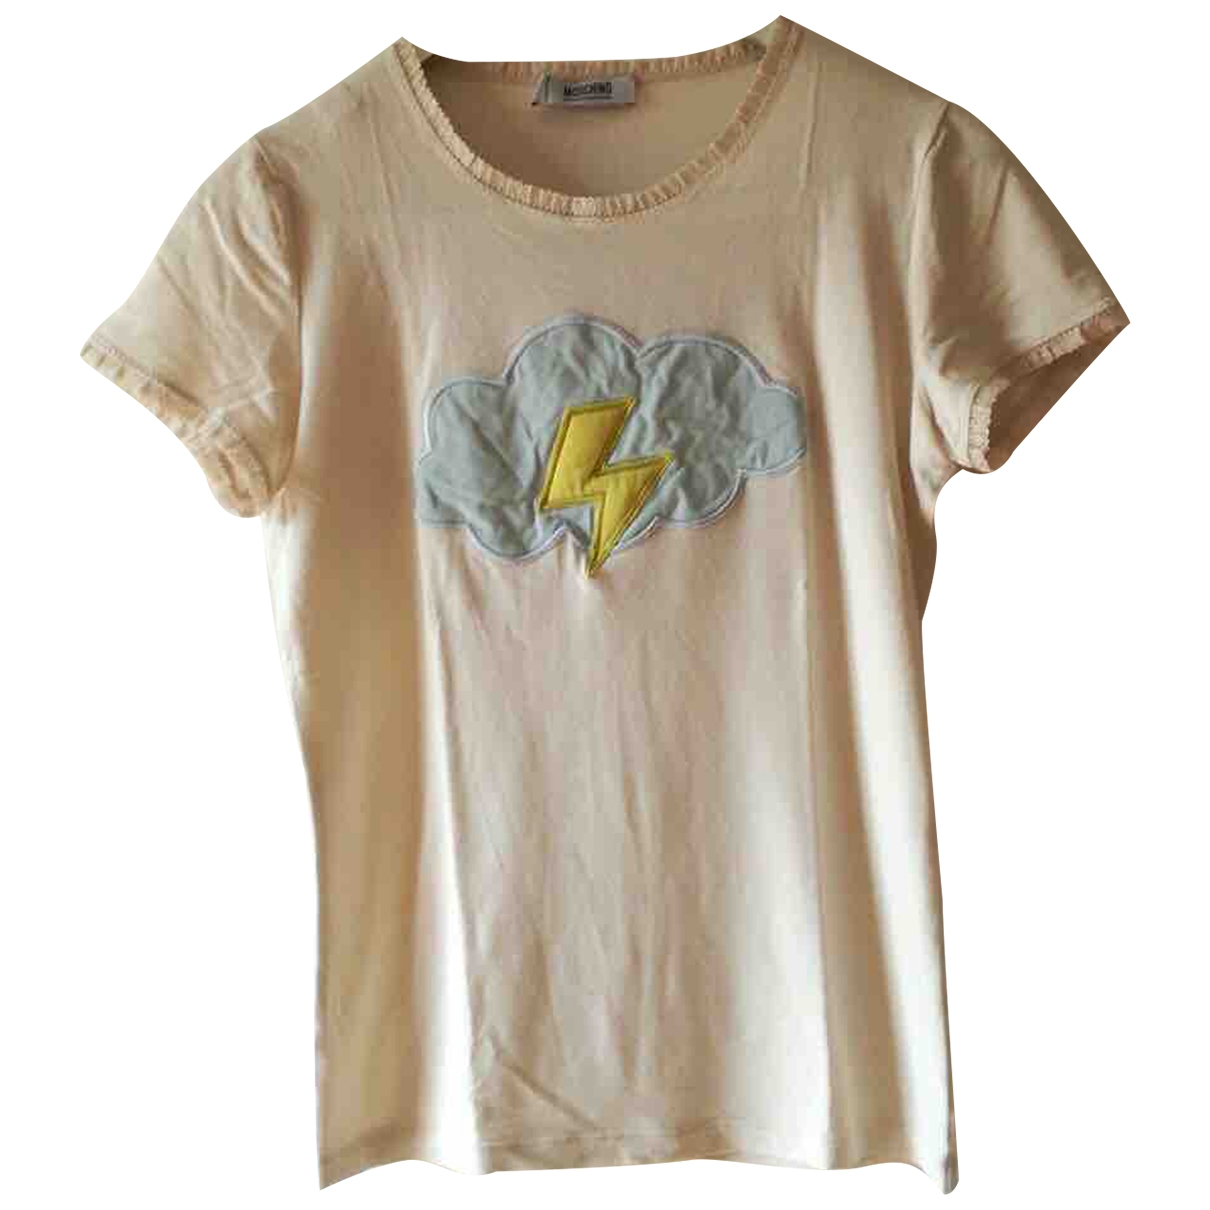 Moschino Cheap And Chic \N White Cotton  top for Women 42 IT